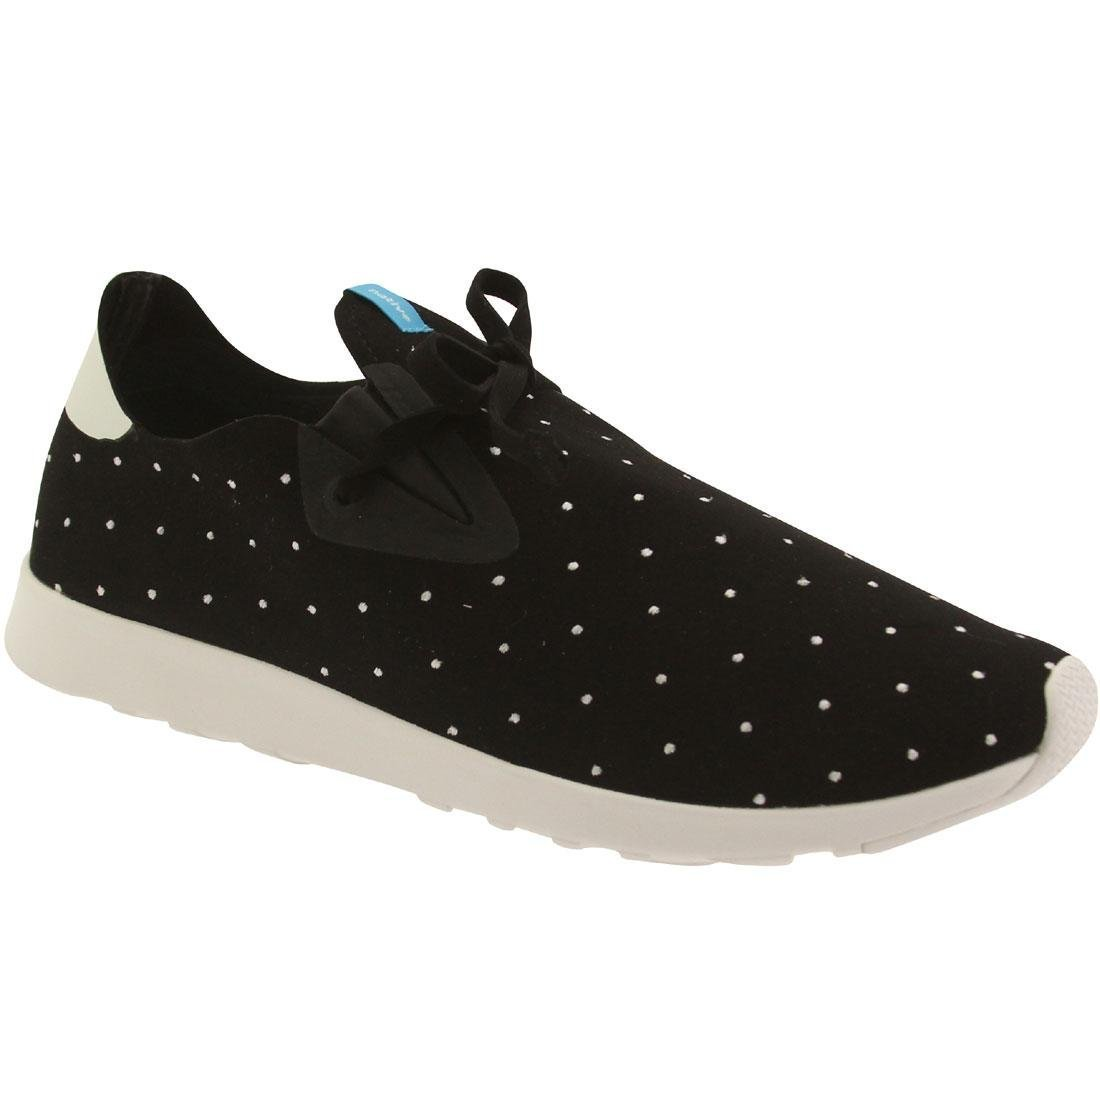 Native Unisex Apollo Moc Fashion Sneaker. B011PLL8D0 12.5 B(M) US Women / 10.5 D(M) US Men|Jiffy Black/Shell White/Polka Dot